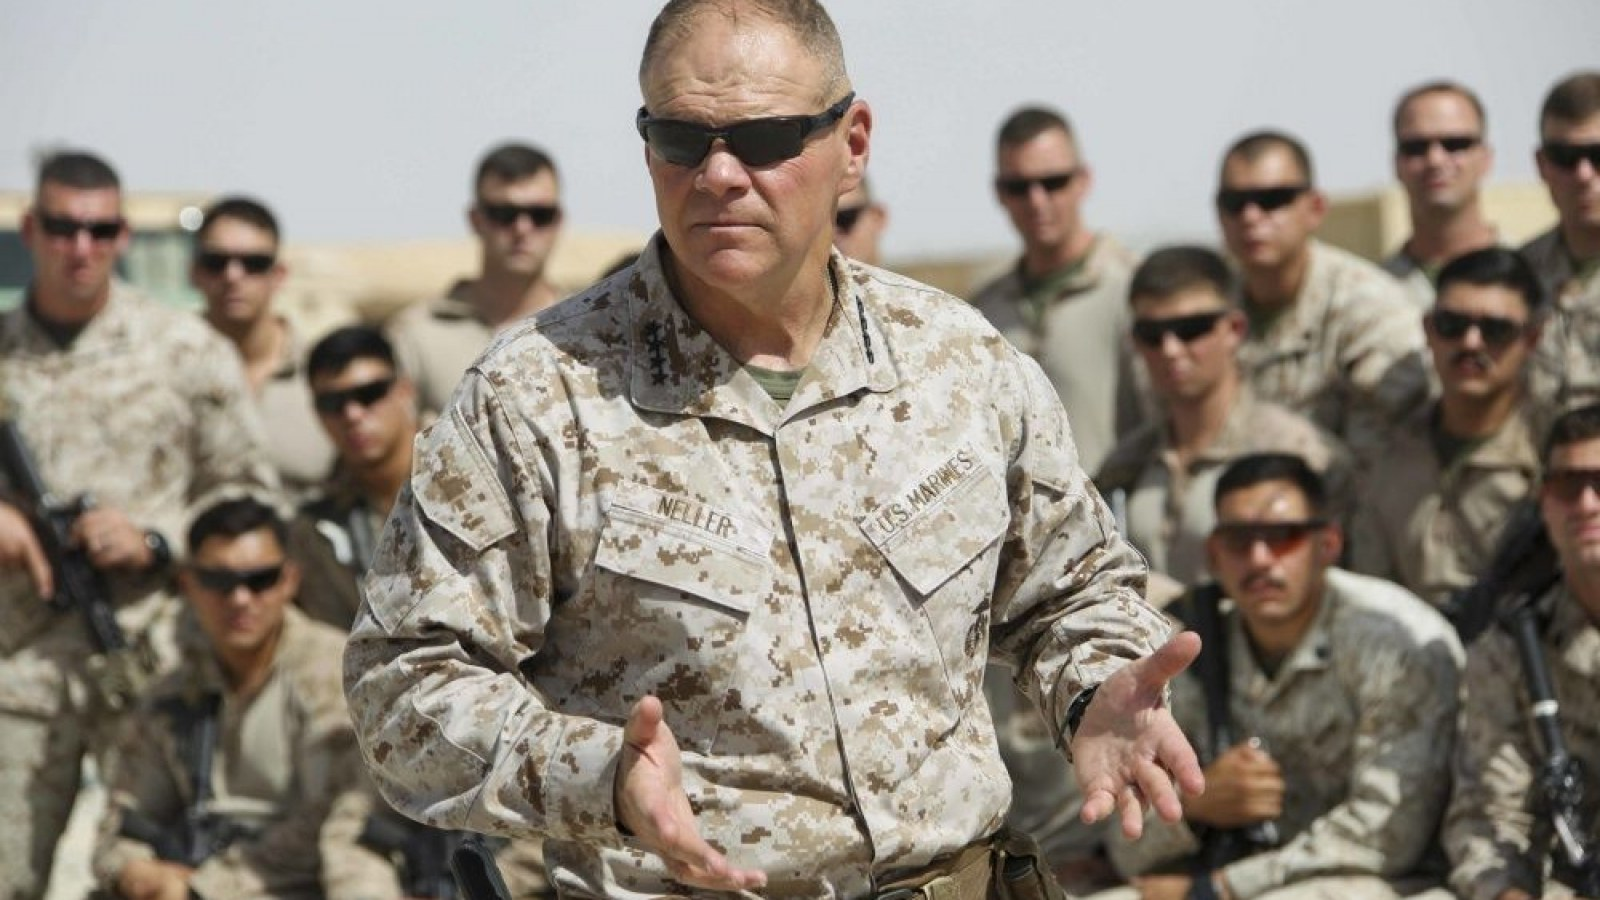 Top Marine General Let Emails Leak Amid Border Funding Fight